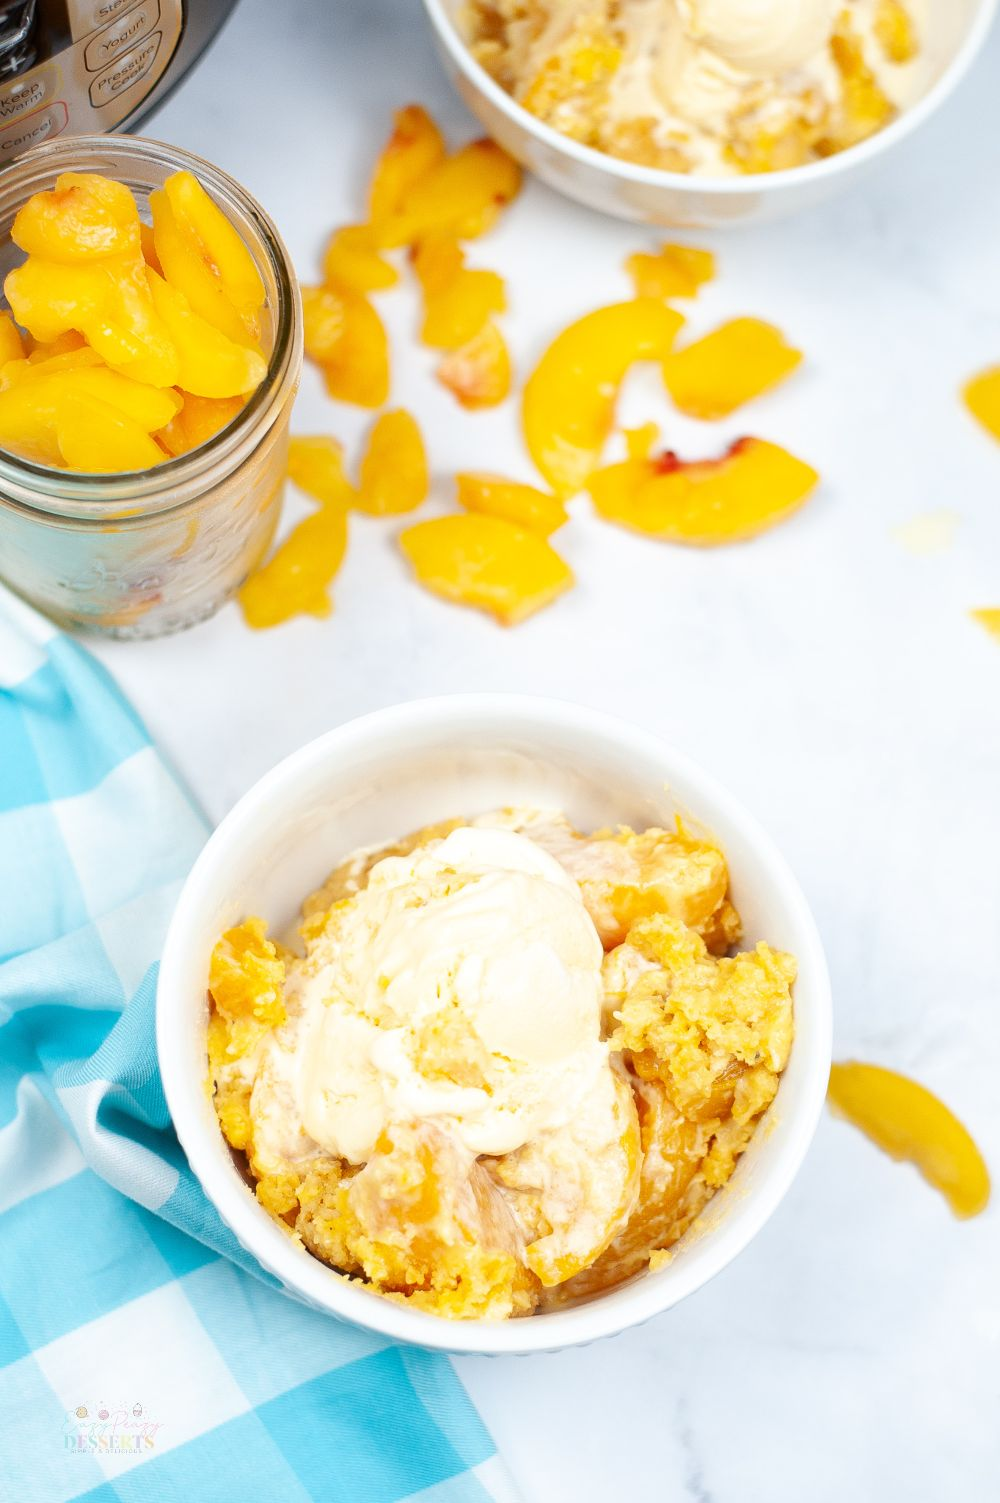 Image of instant pot peach cobbler in a white bowl, topped with vanilla ice cream